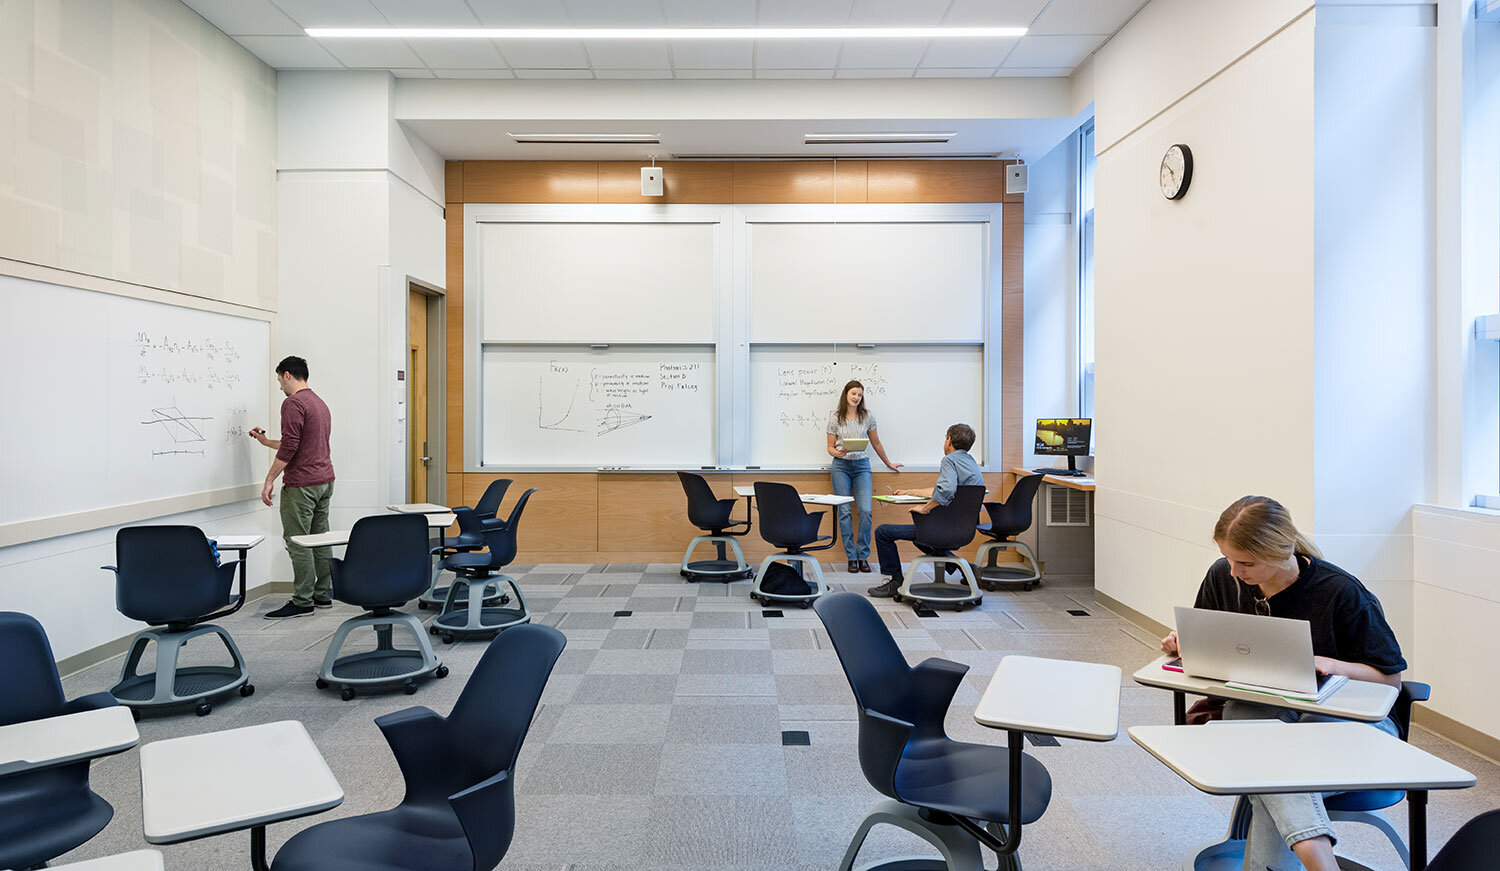 Classroom with movable furniture